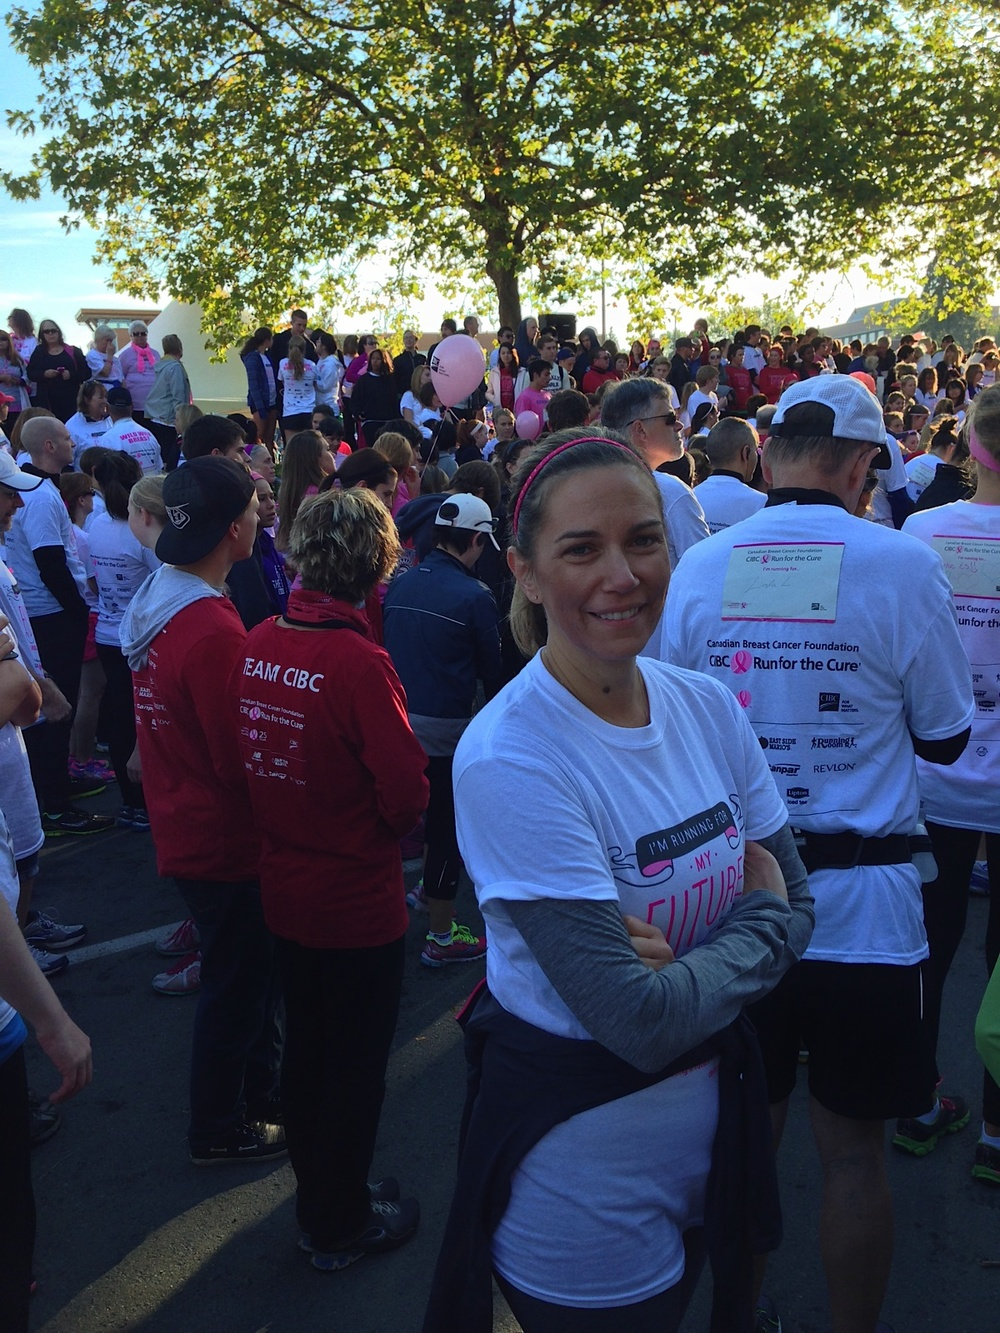 FriesenPress President CEO Tammara Kennelly getting ready for the run